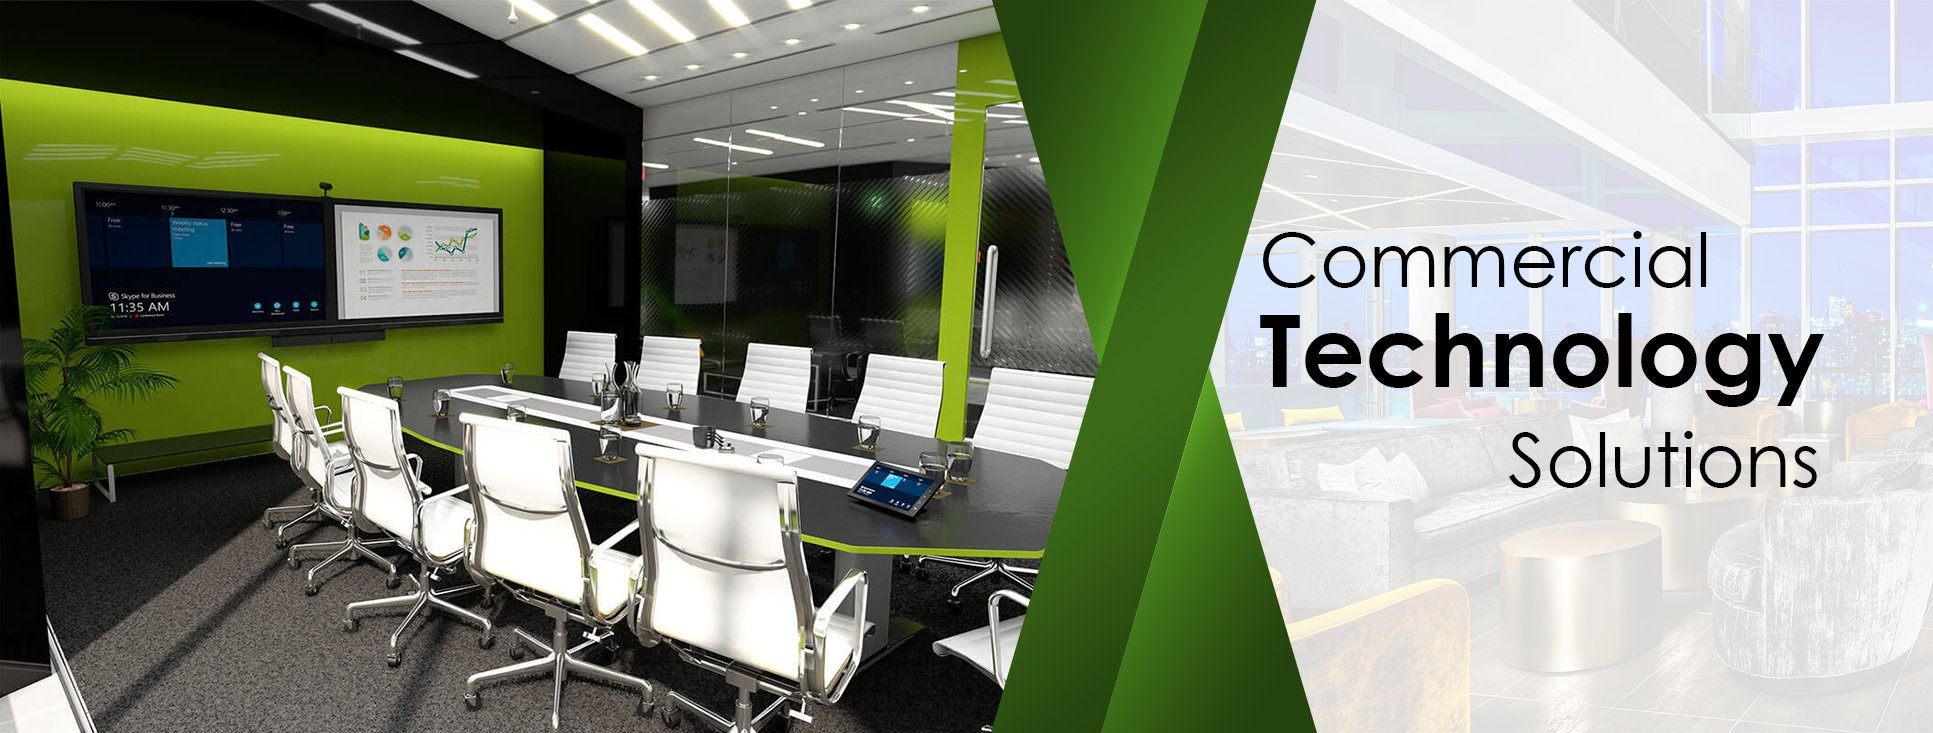 Commercial Technology Solutions